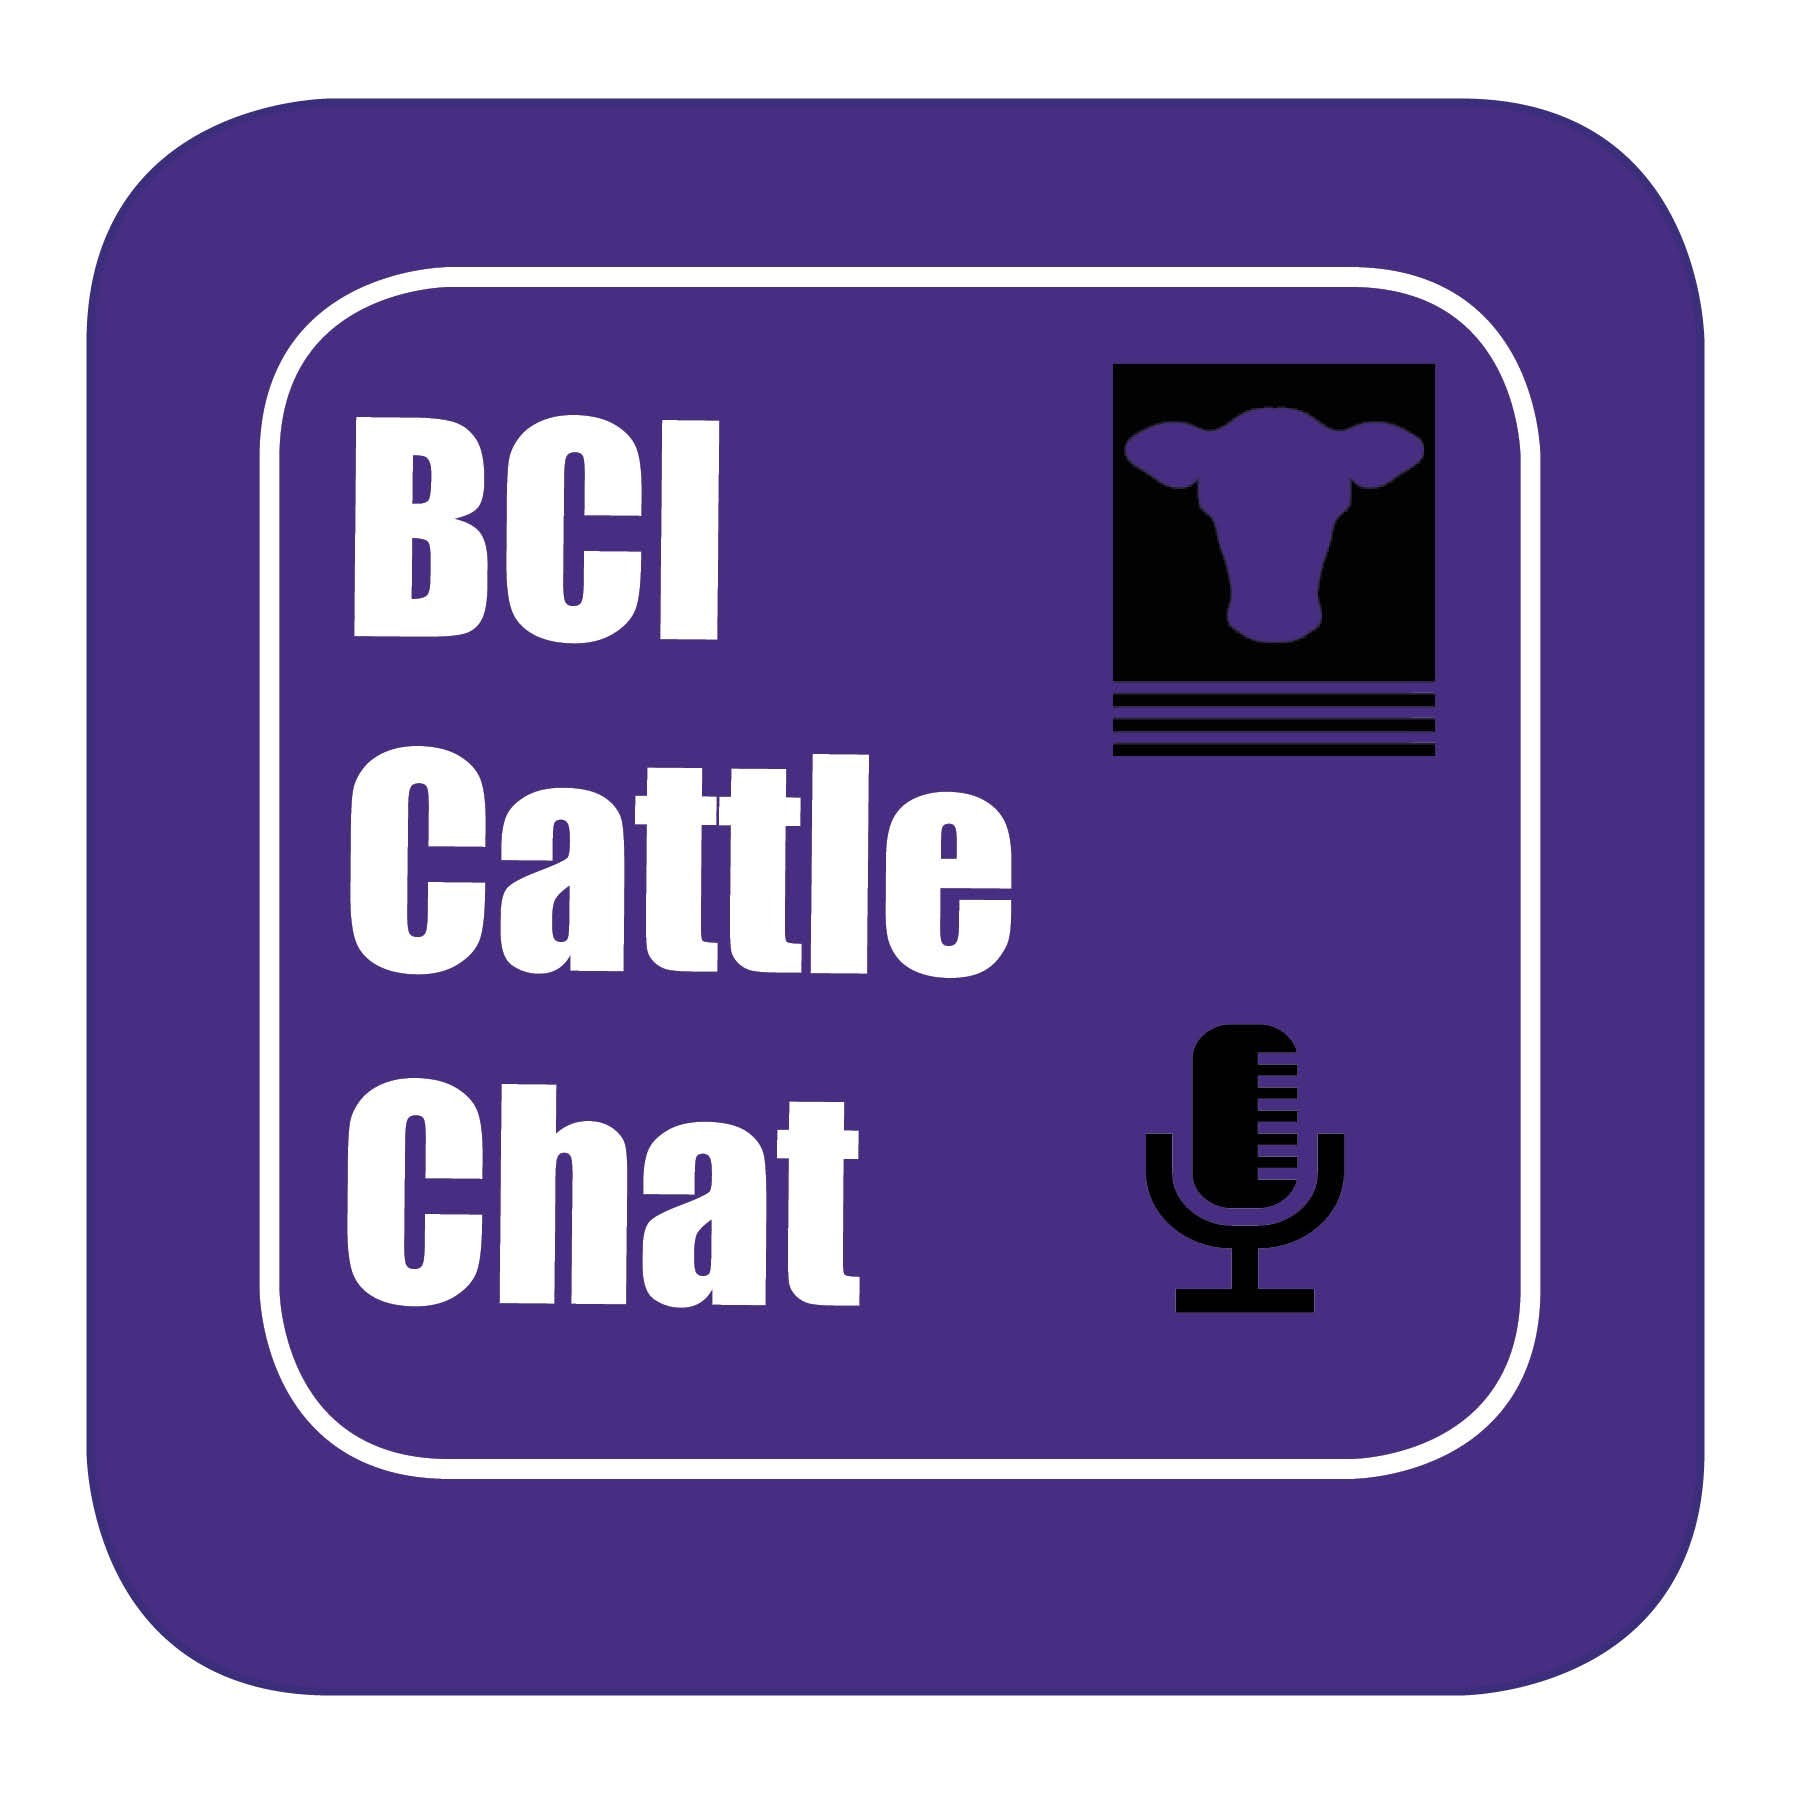 BCI Cattle Chat - Episode 53